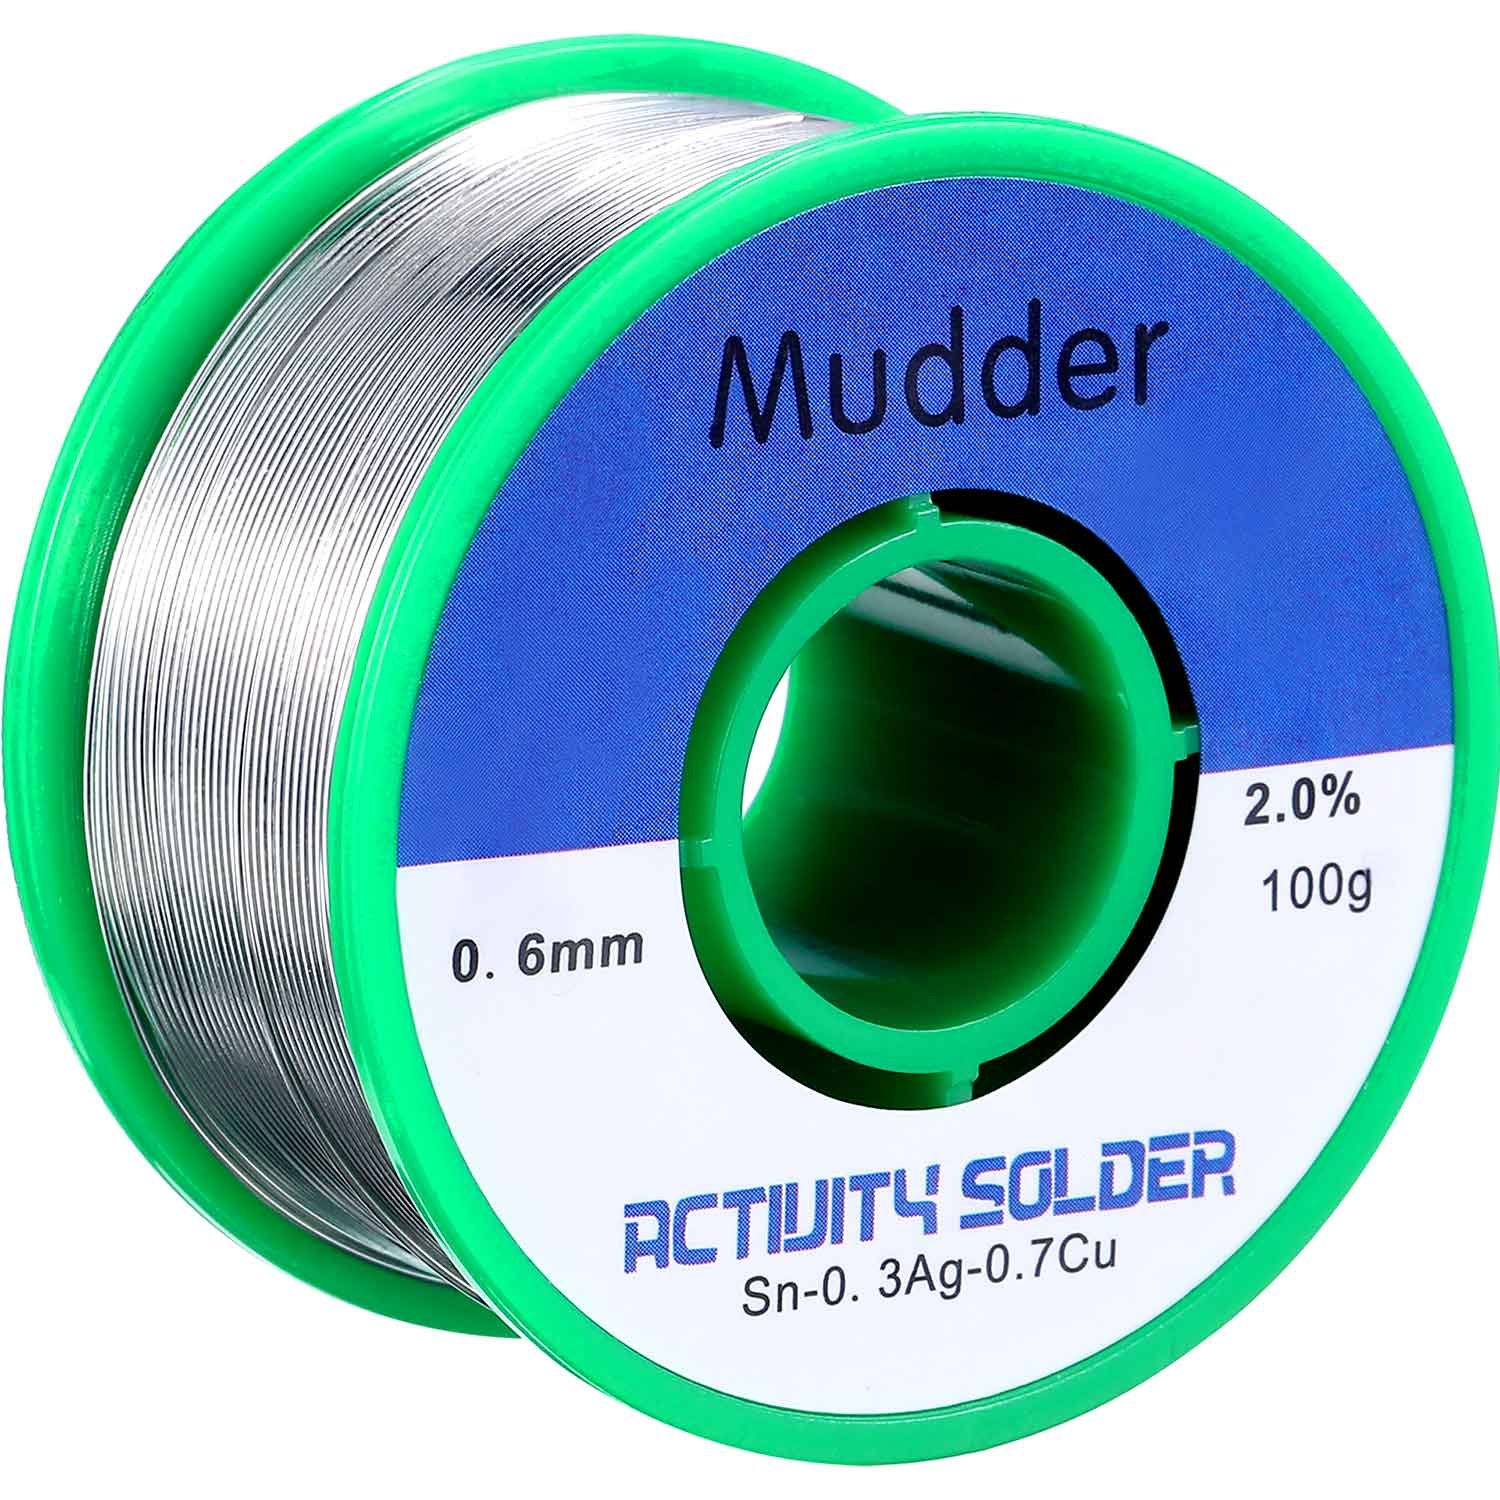 Mudder Lead Free Solder Wire Sn99 Ag0.3 Cu0.7 with Rosin Core for Electrical Soldering 0.22lbs (0.6 mm) by Mudder